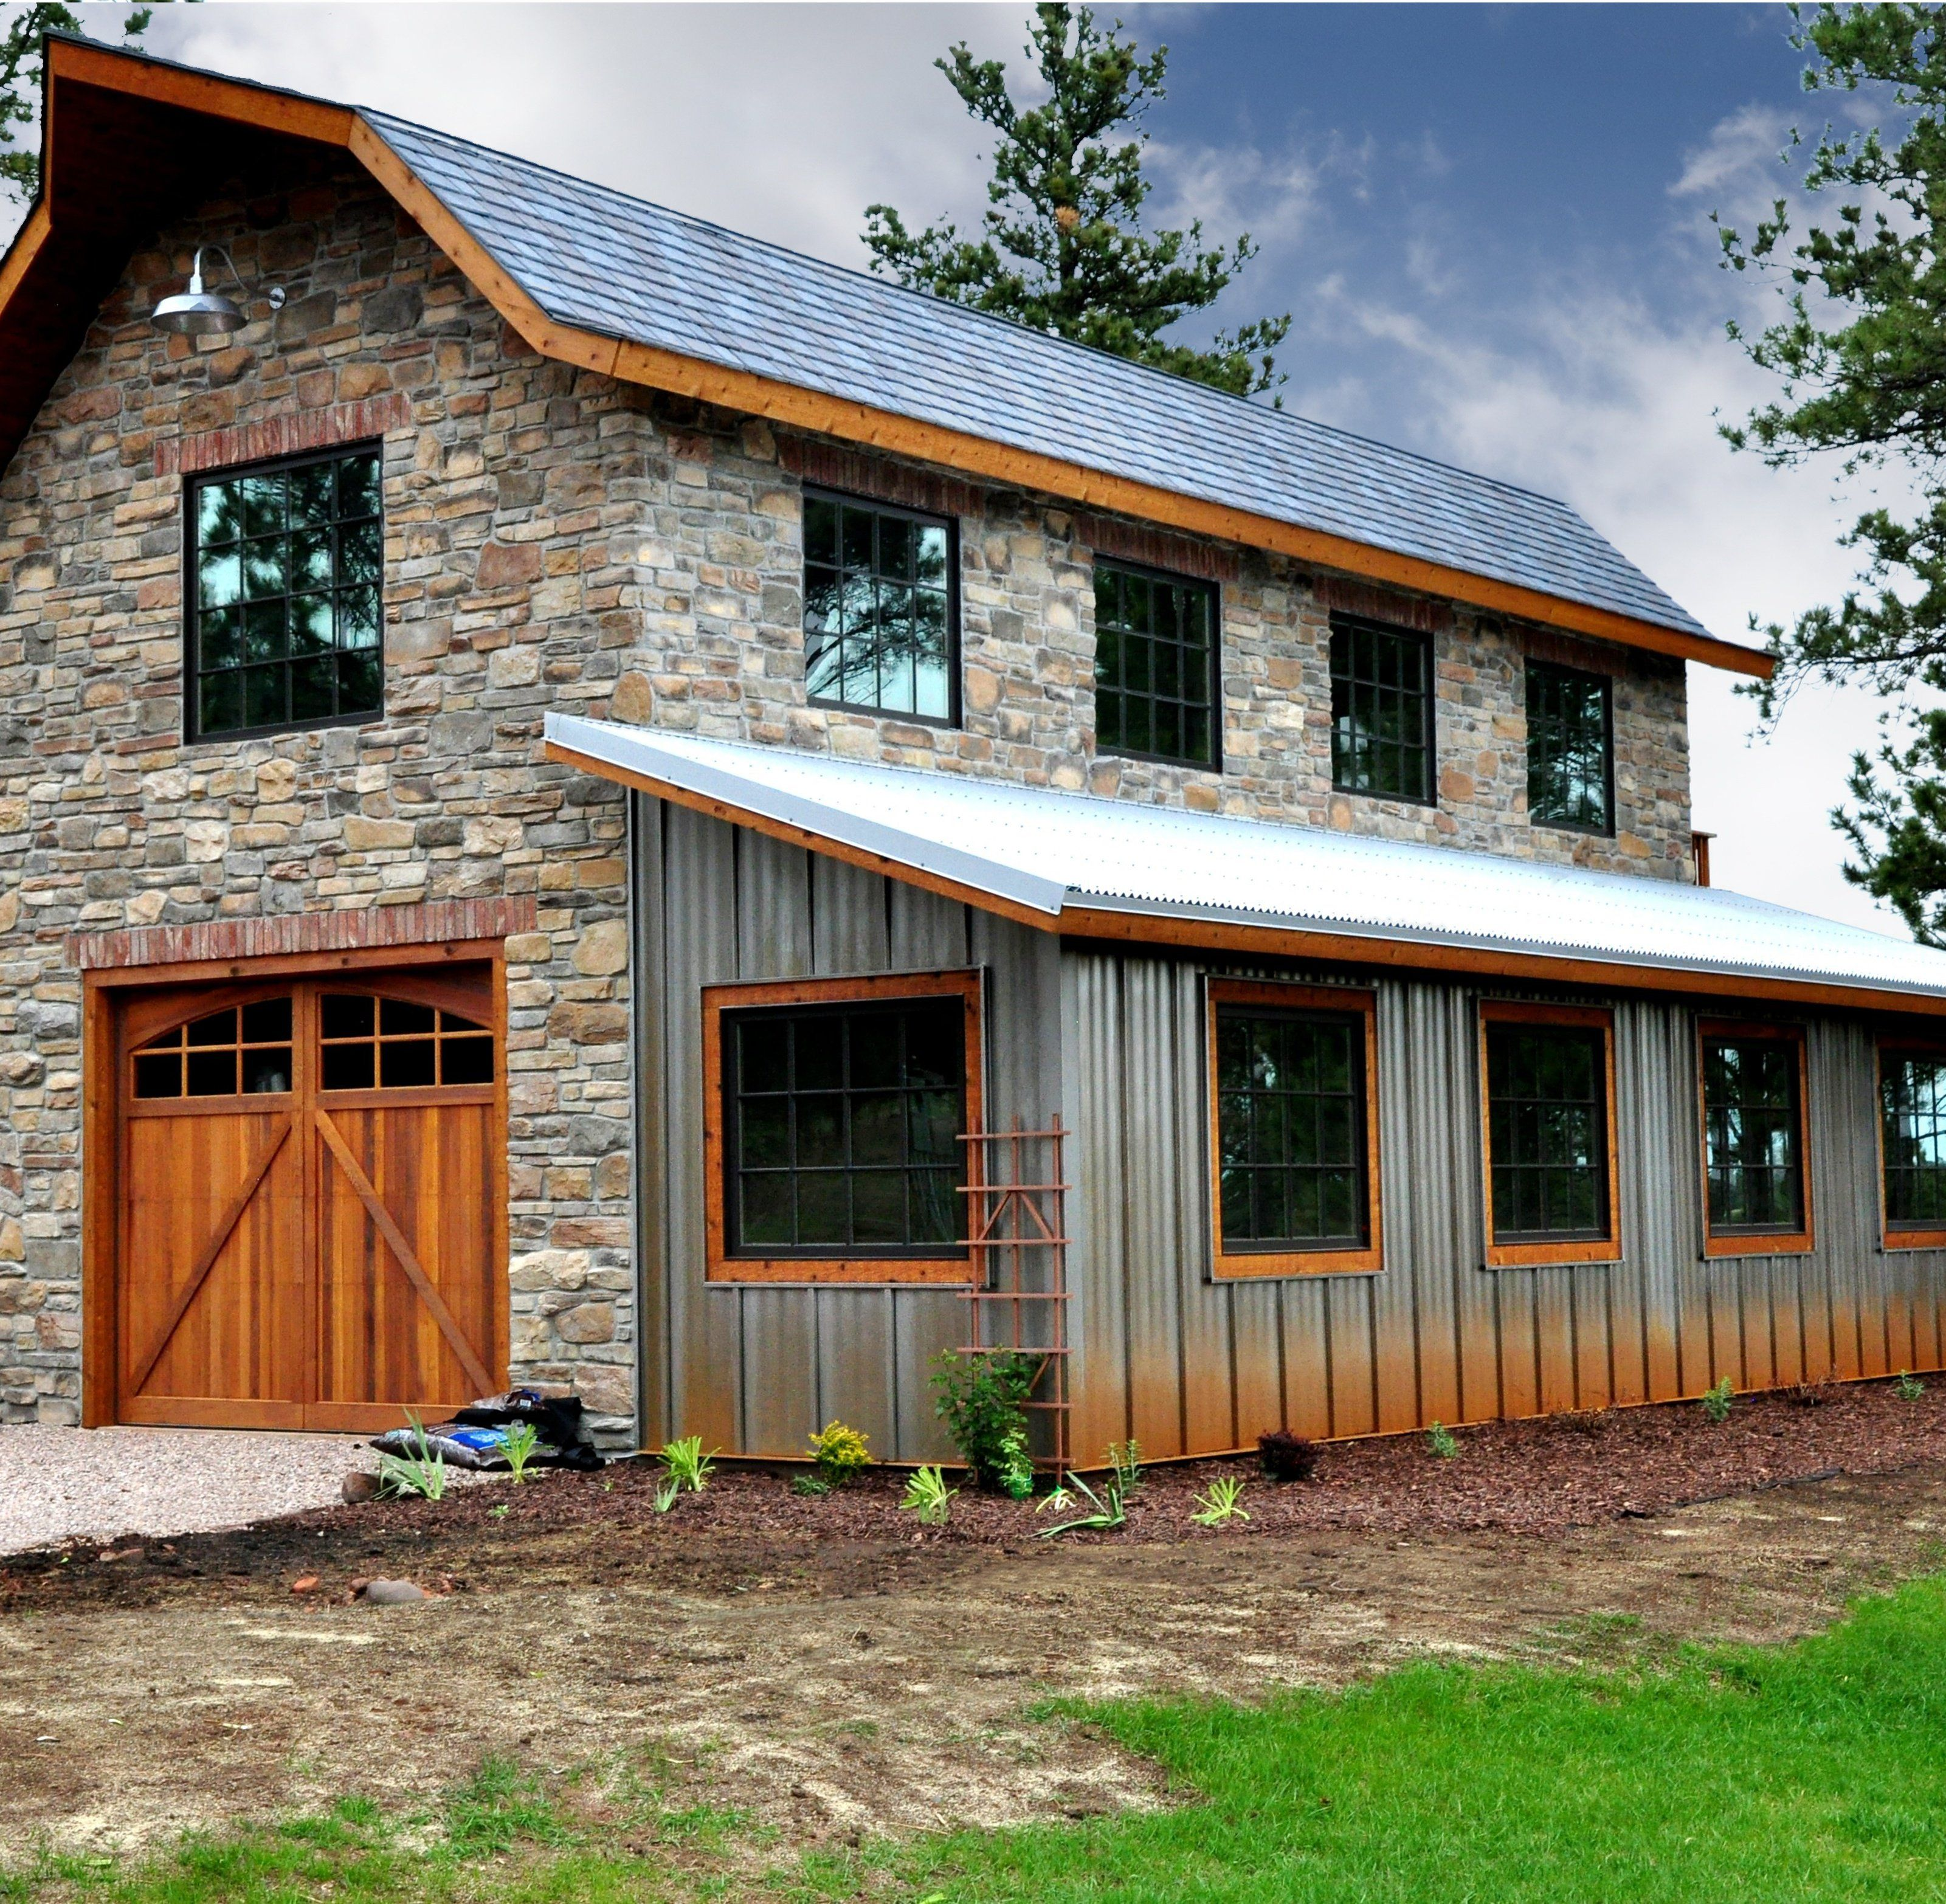 25 Example Of Garage Designs: Metal Building Examples - Residential & Commercial